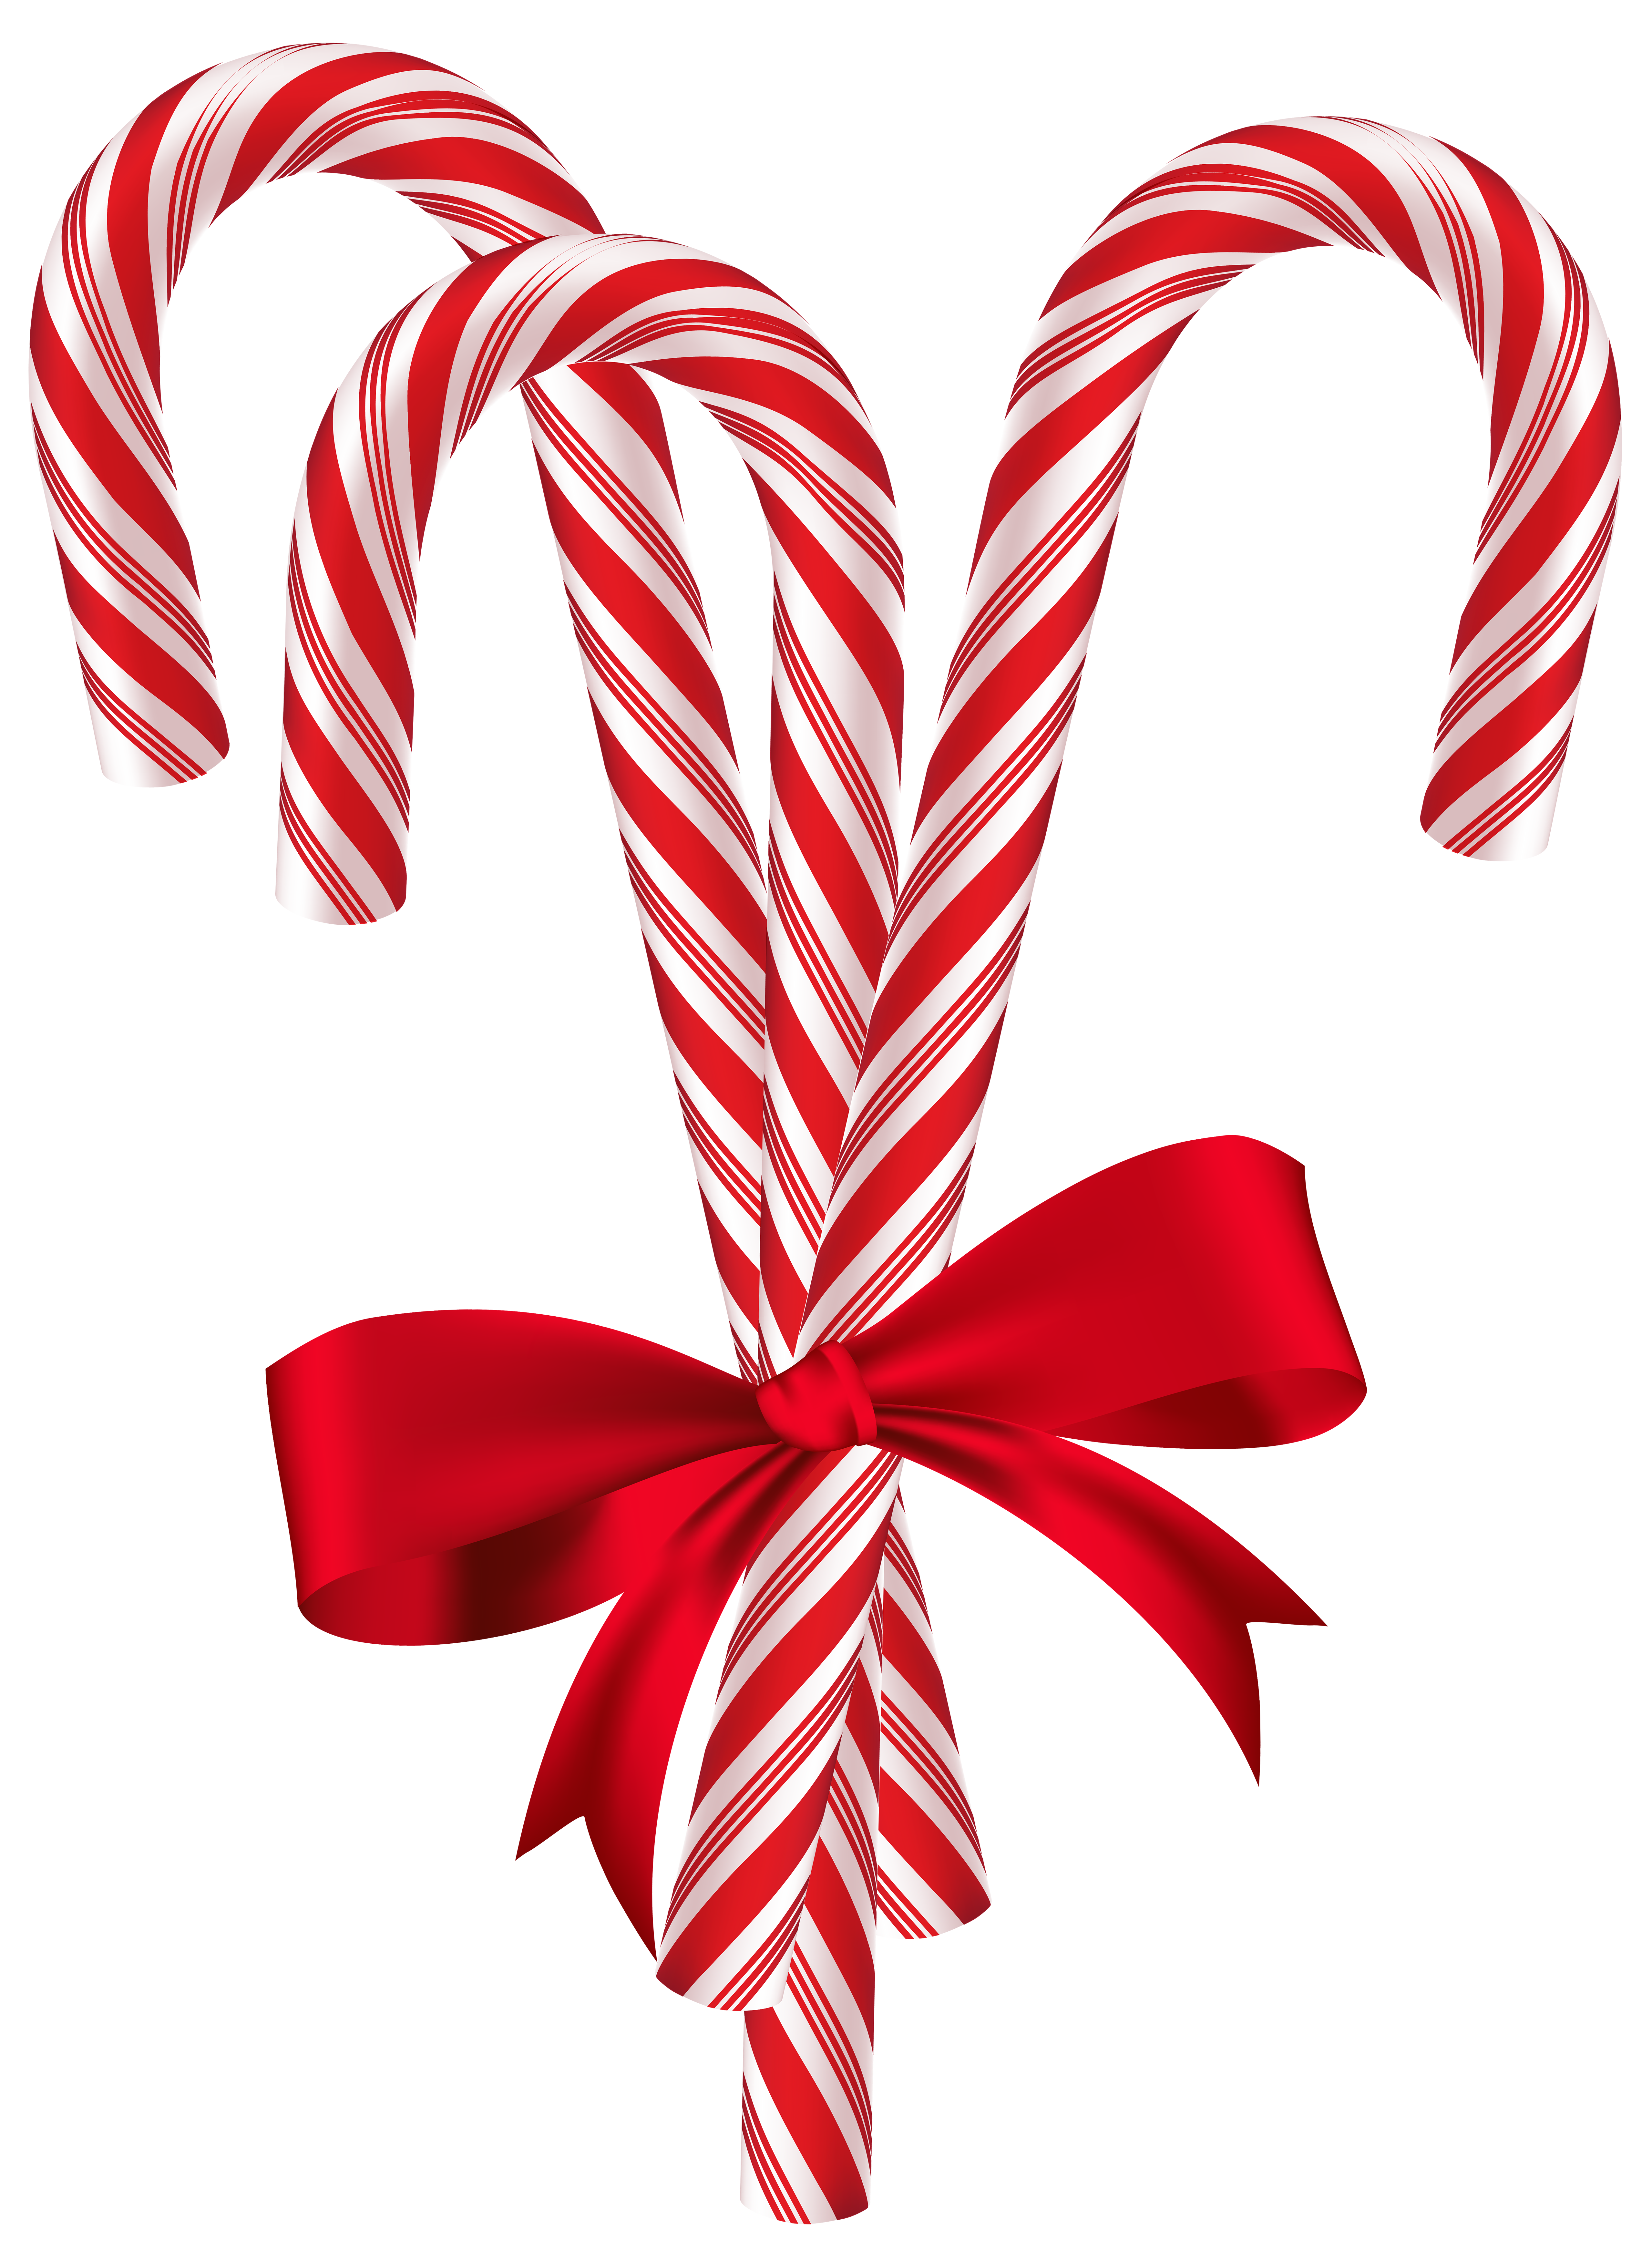 Cookies clipart candy. Canes with red bow